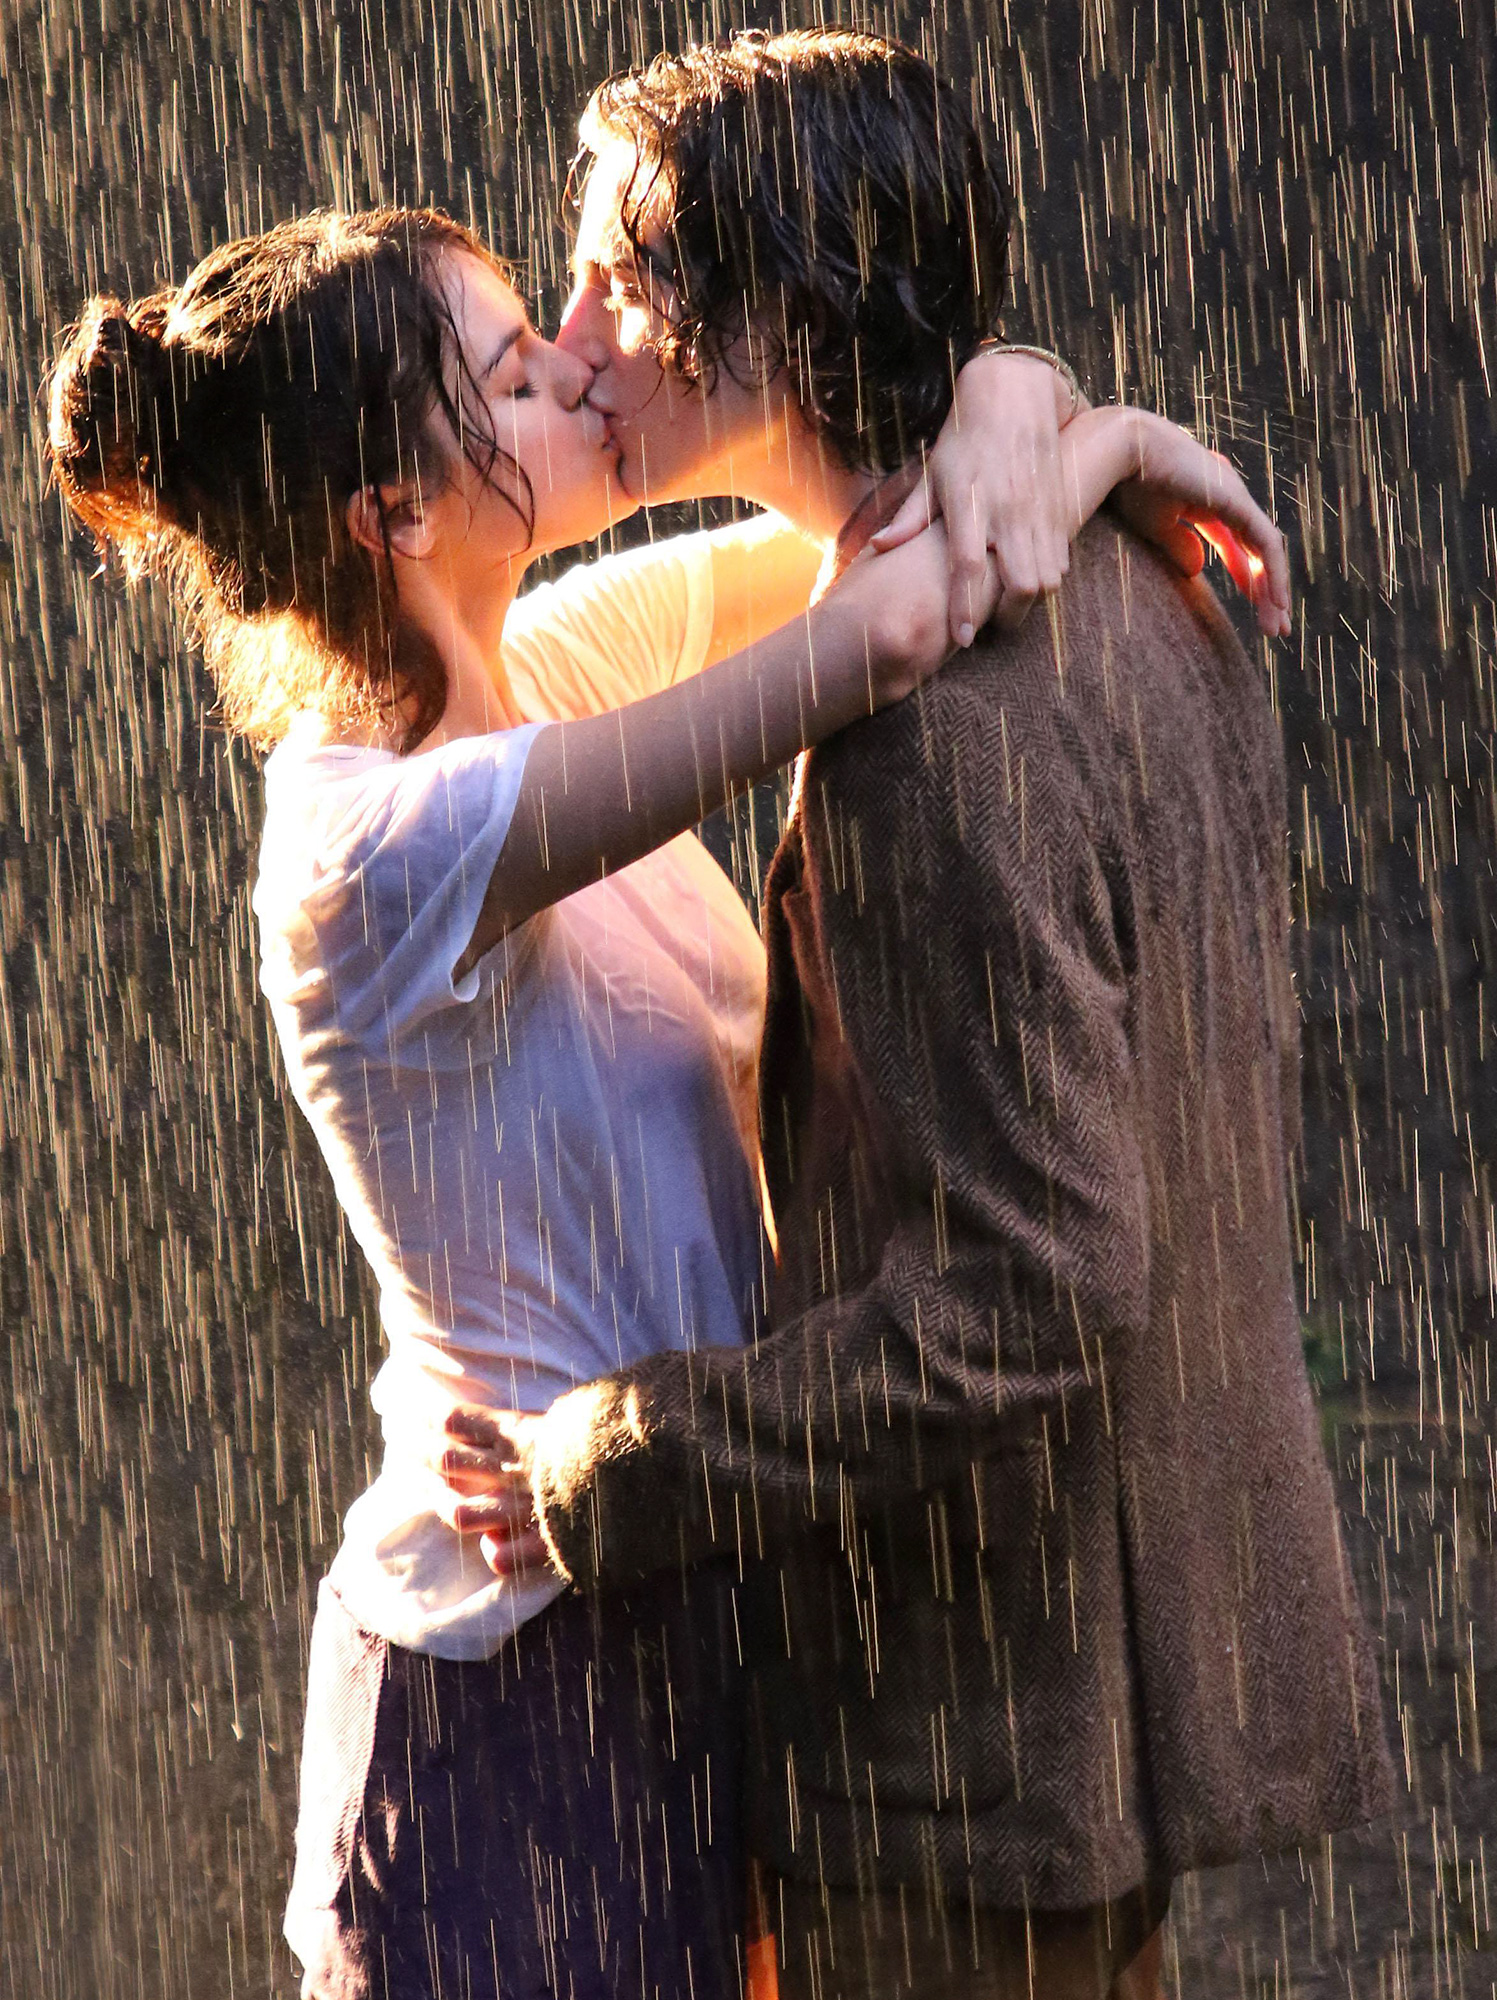 Selena Gomez and Timothee Chalamet kiss passionately in the rain during filming for Woody Allen's Untitled Movie Project in Manhattan's Central Park